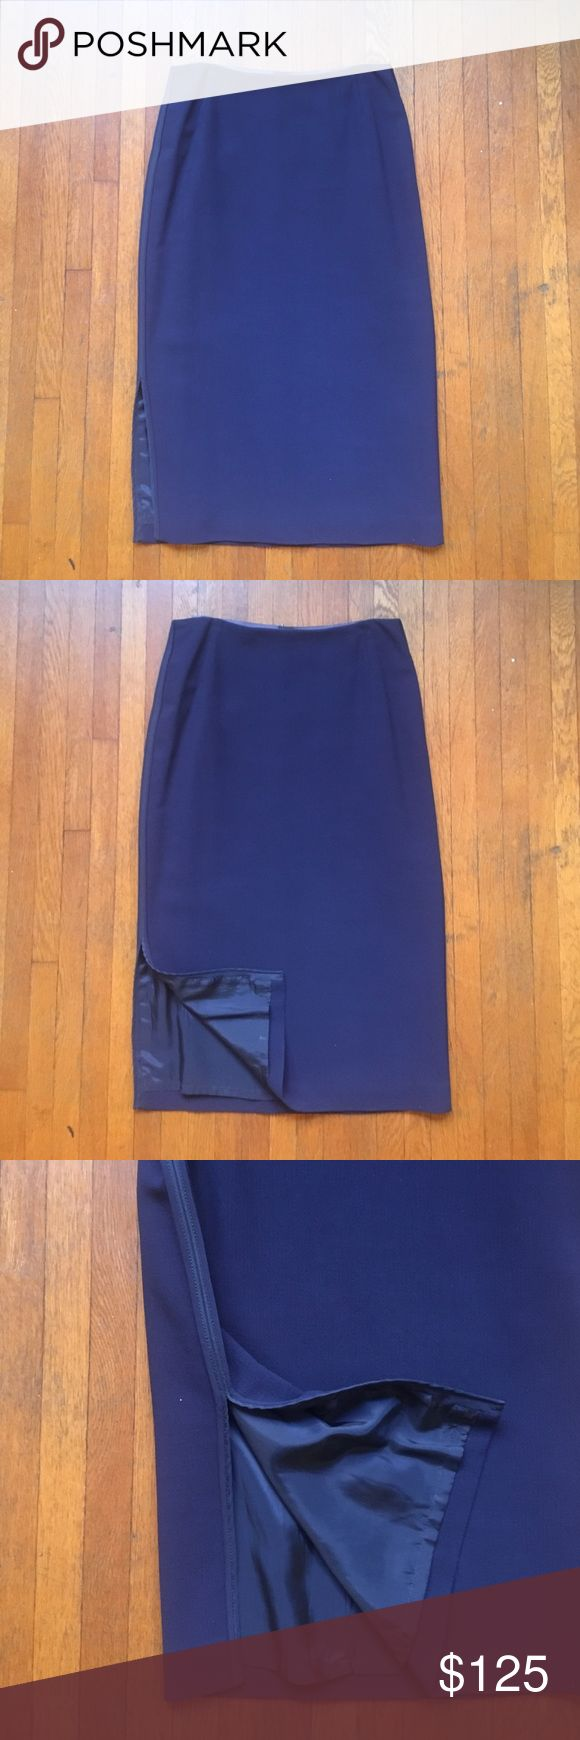 Lafayette 148 navy blue pencil skirt Lafayette 148 navy blue pencil skirt with side slit. Has a relaxed fit and is medium length, hitting around the knee or below depending on height. Excellent condition! Lafayette 148 New York Skirts Pencil